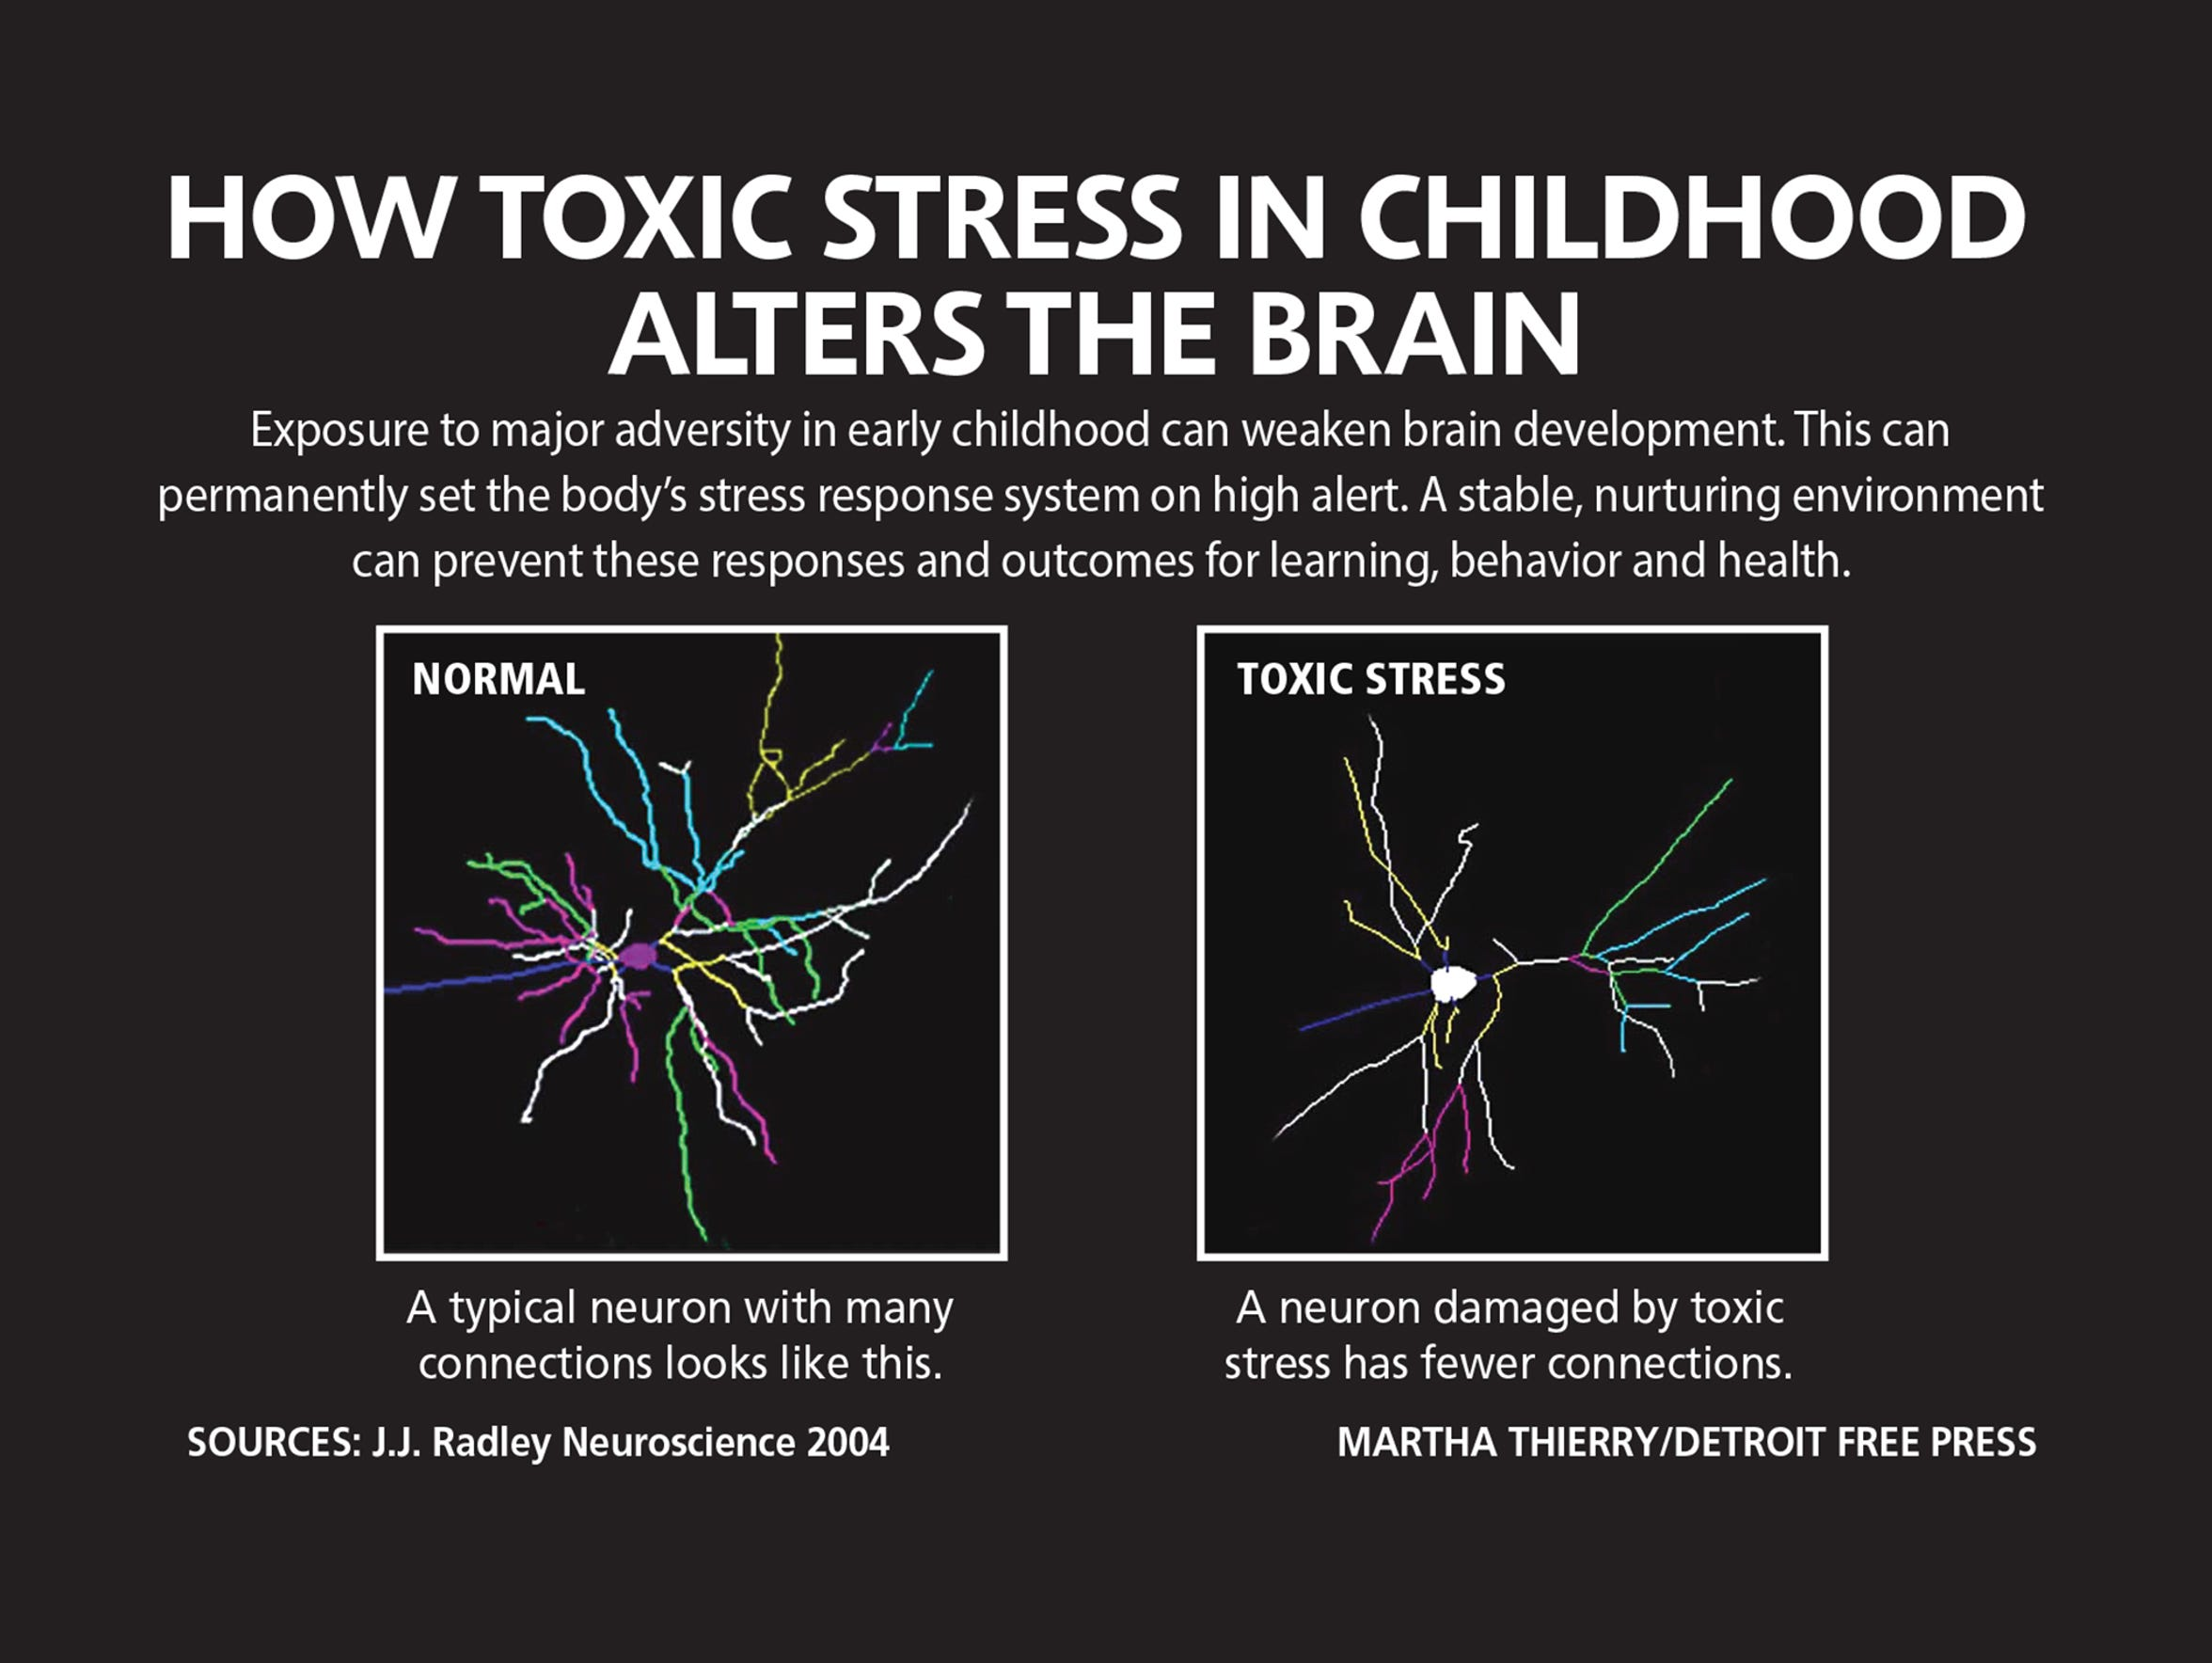 How toxic stress in childhood alters the brain